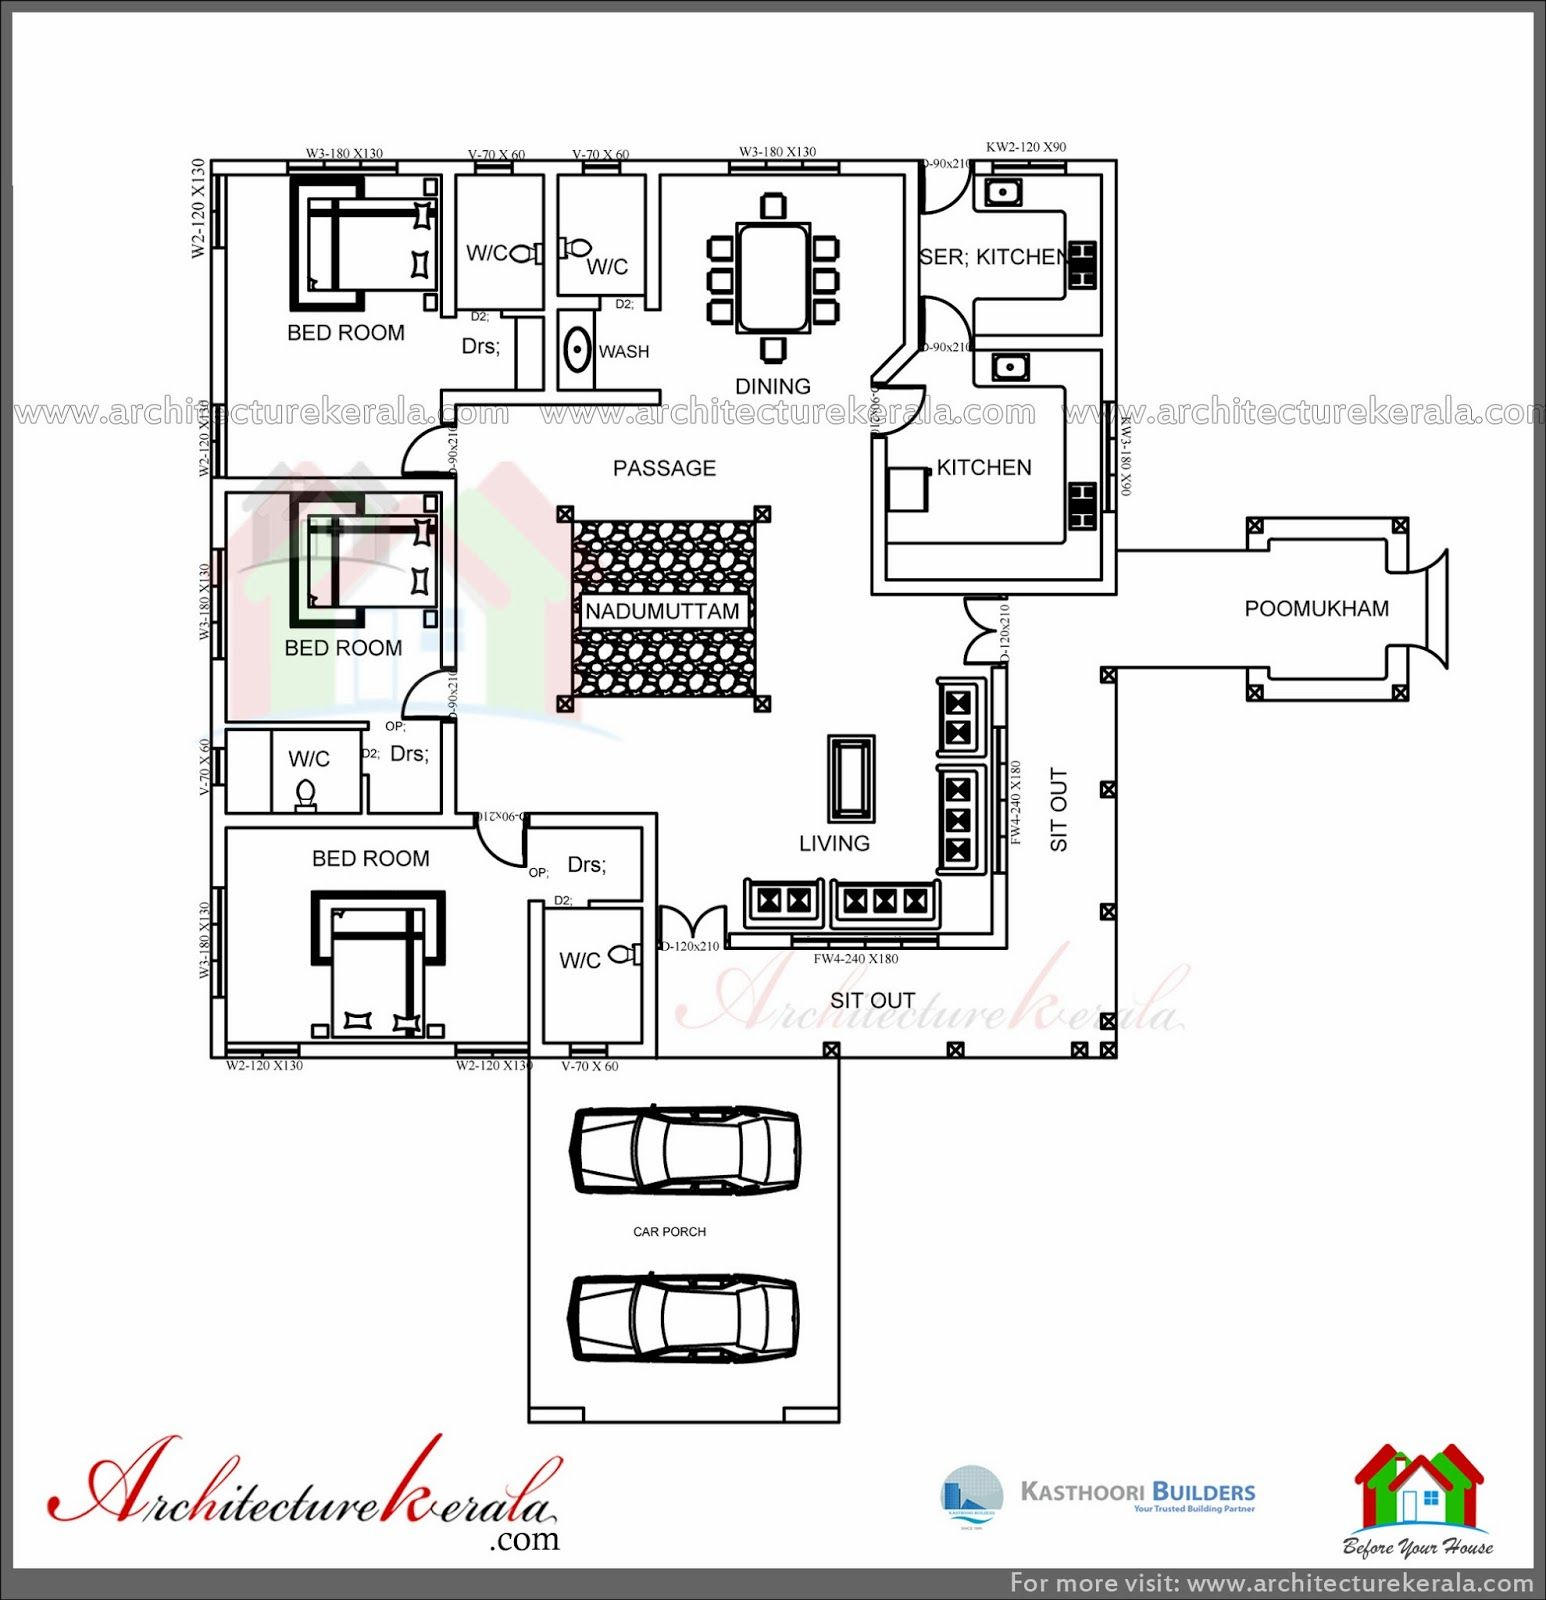 Architecture kerala traditional house plan with for Kerala house plan images